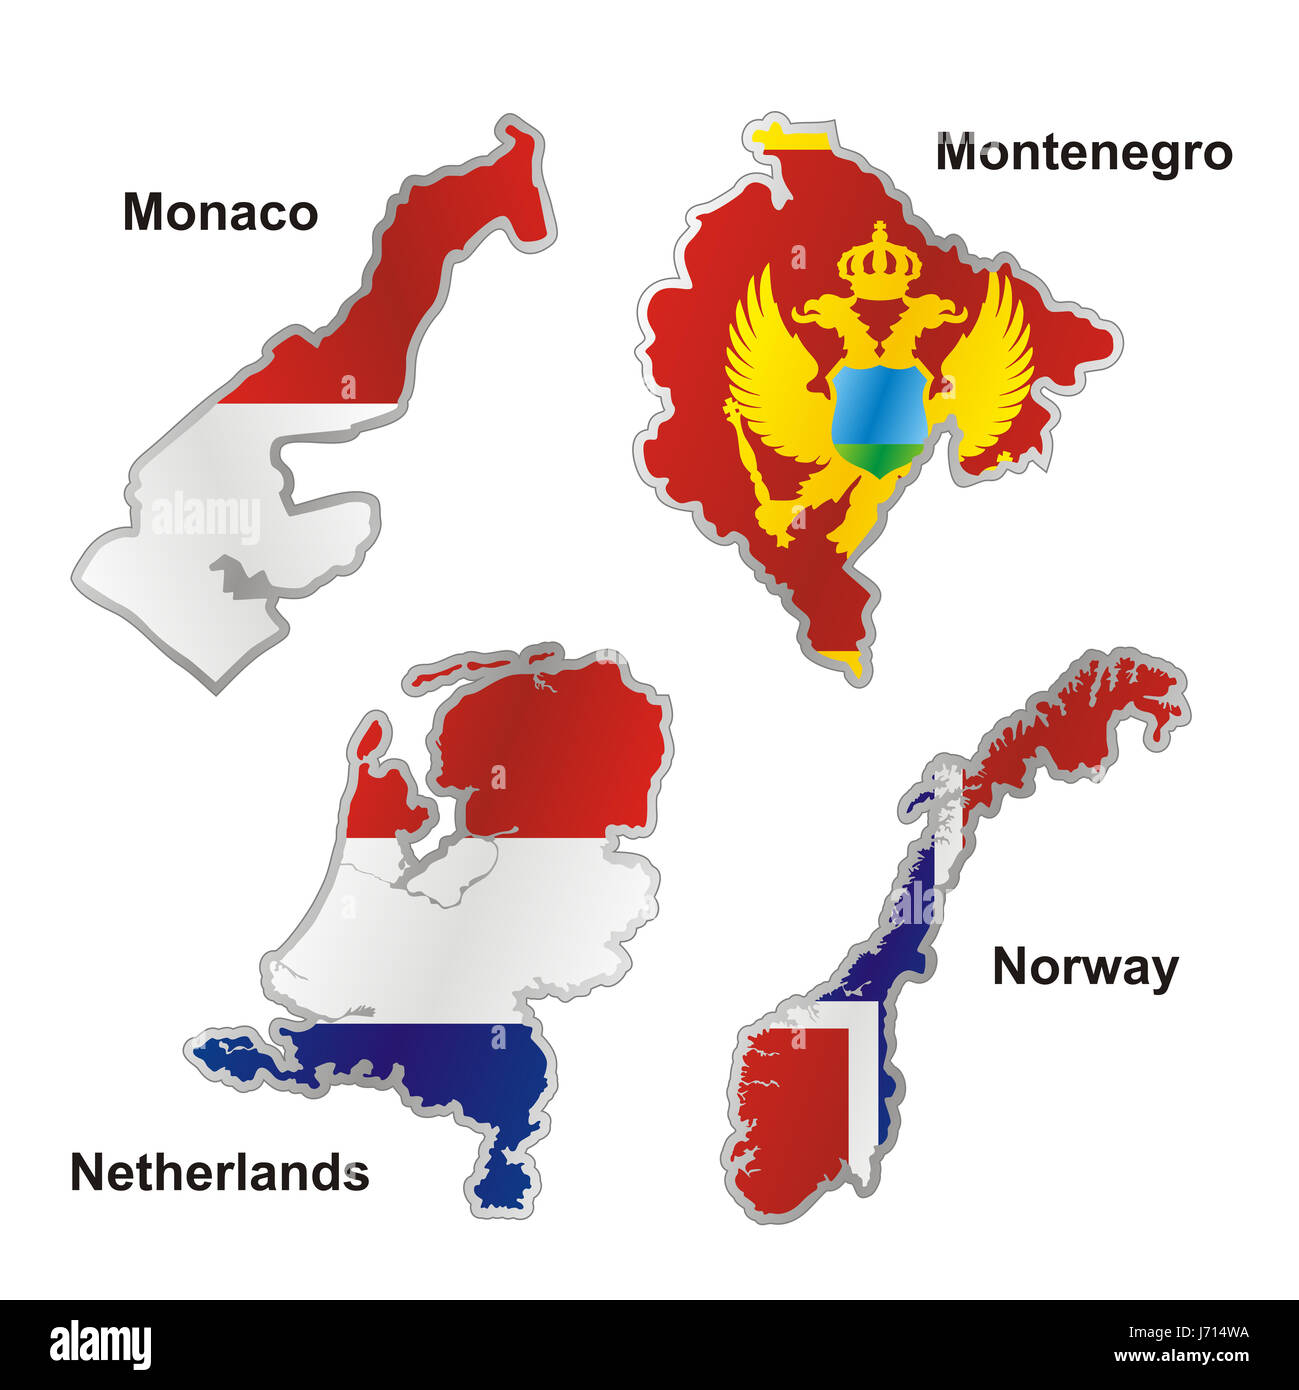 norway flag netherlands monaco map atlas map of the world isolated